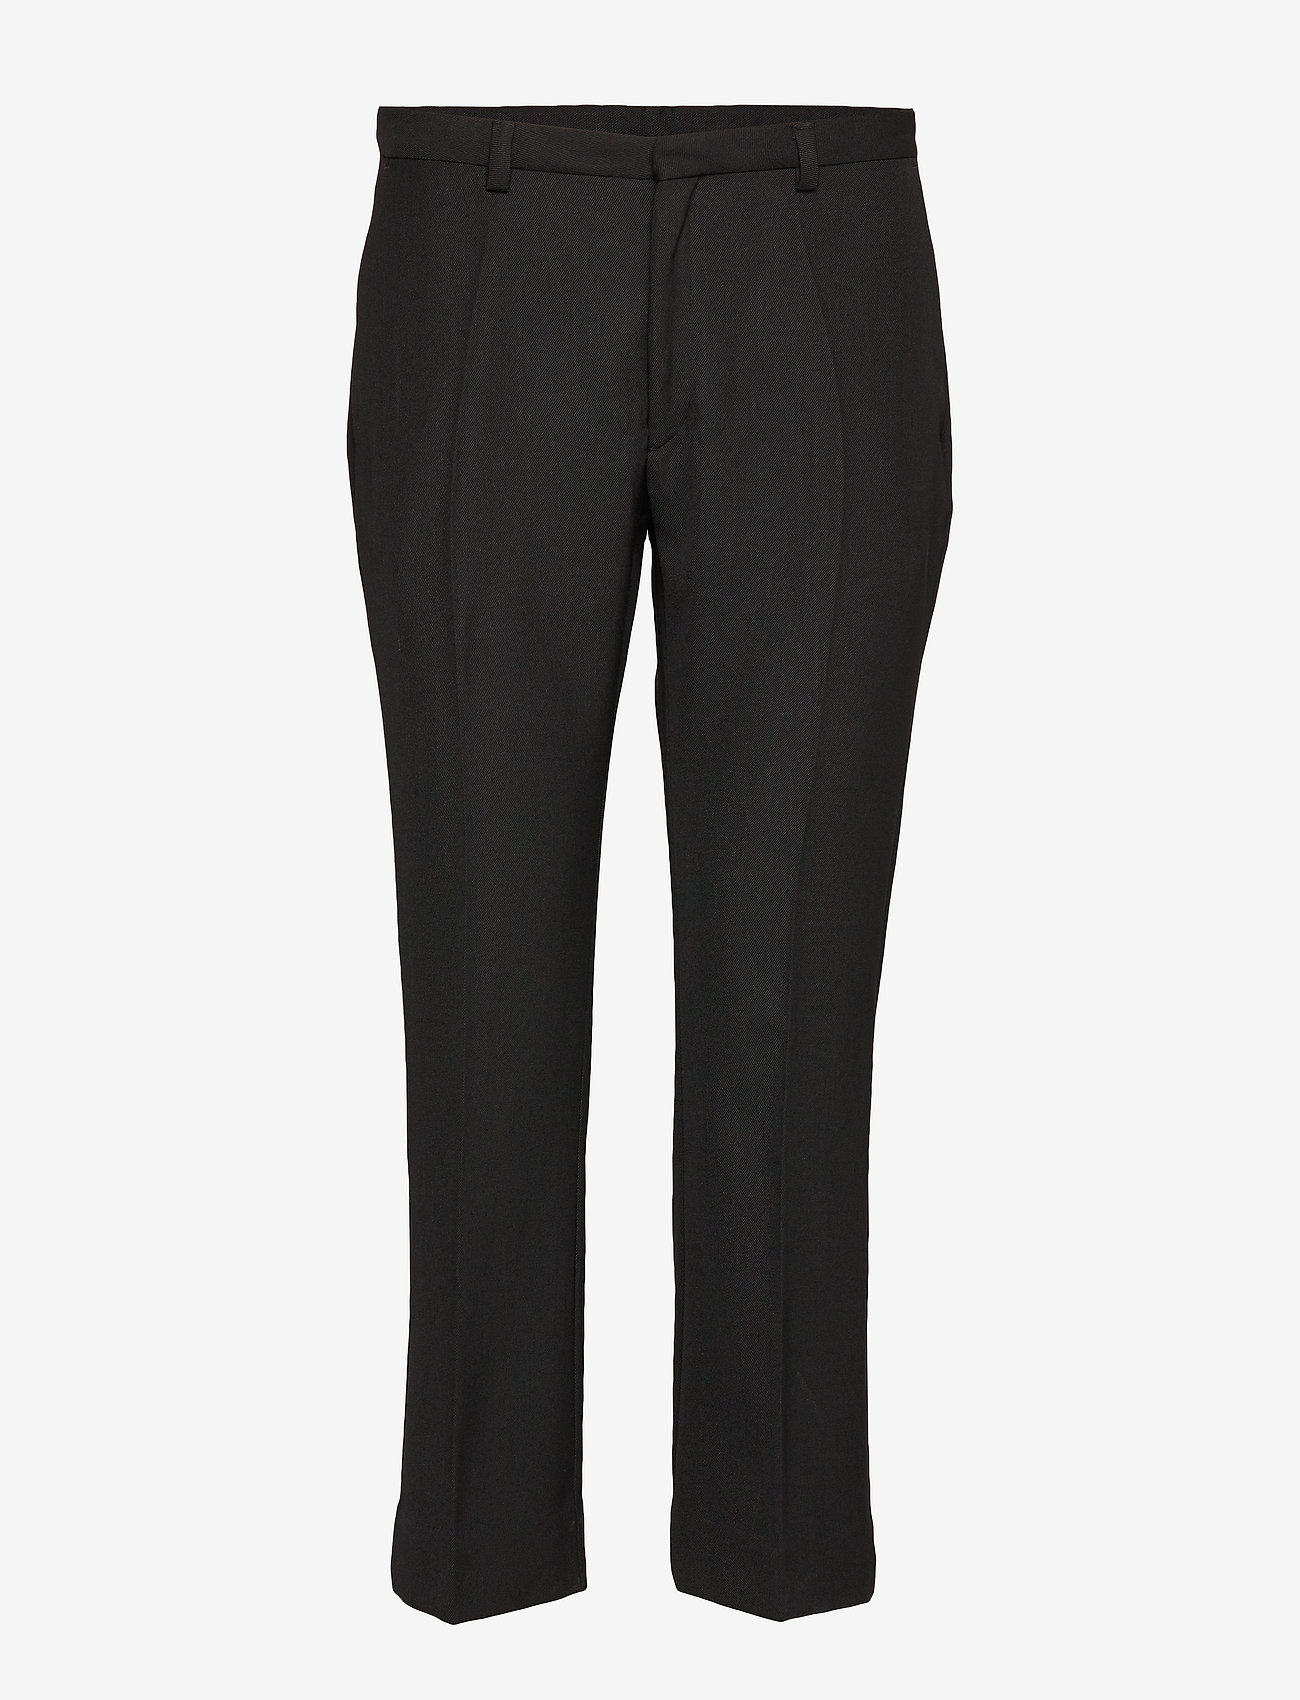 Whyred - CARNOT - straight leg trousers - black - 0